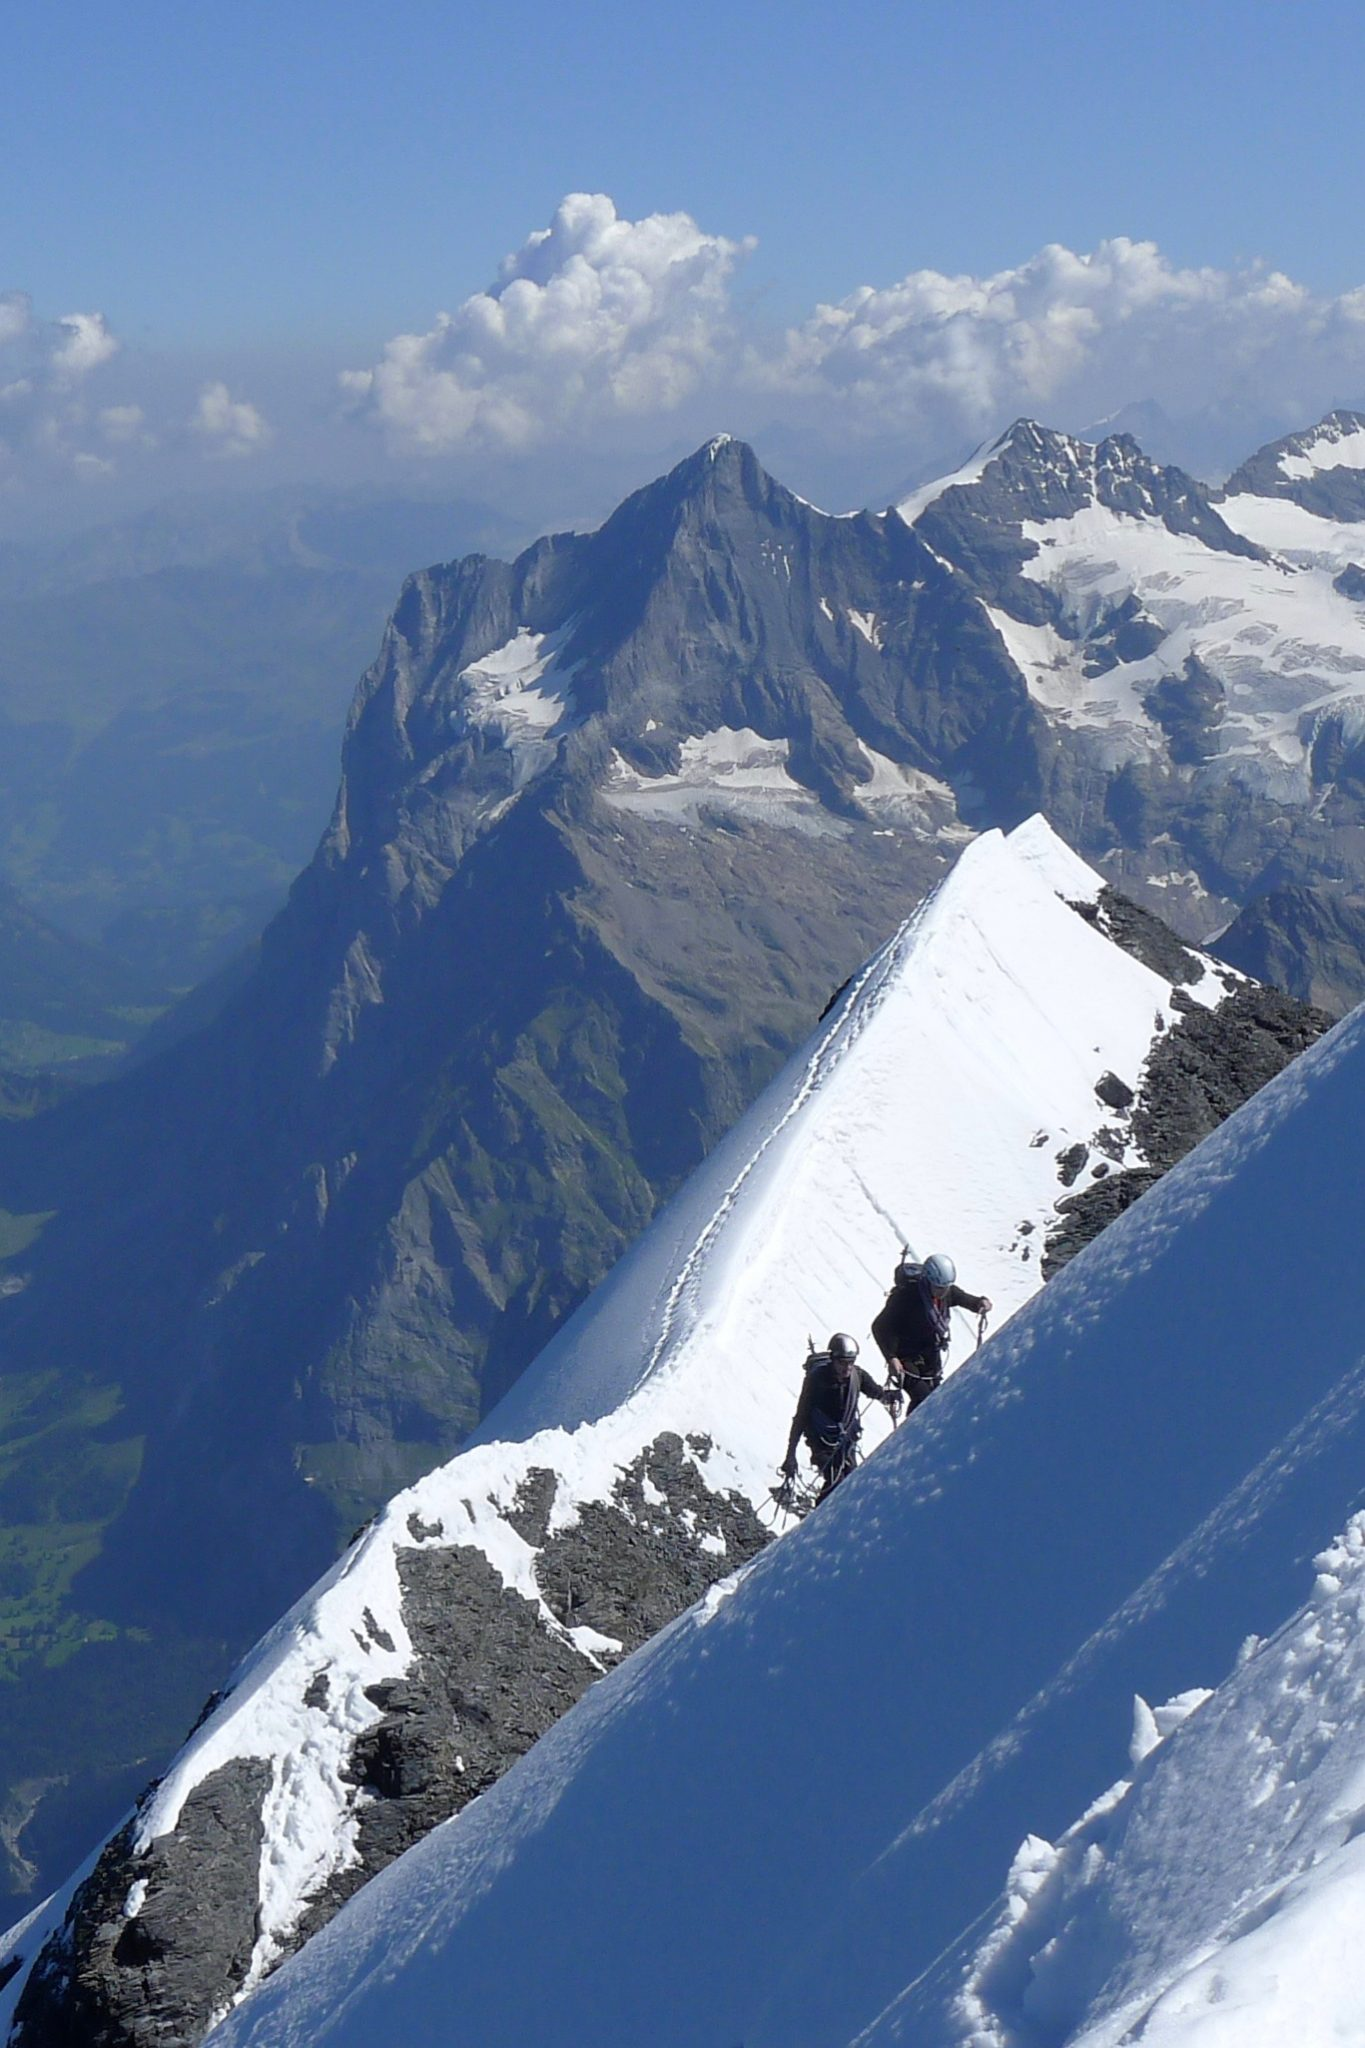 Climbing on the Mitteliggi Ridge fo the Eiger in Switzerland